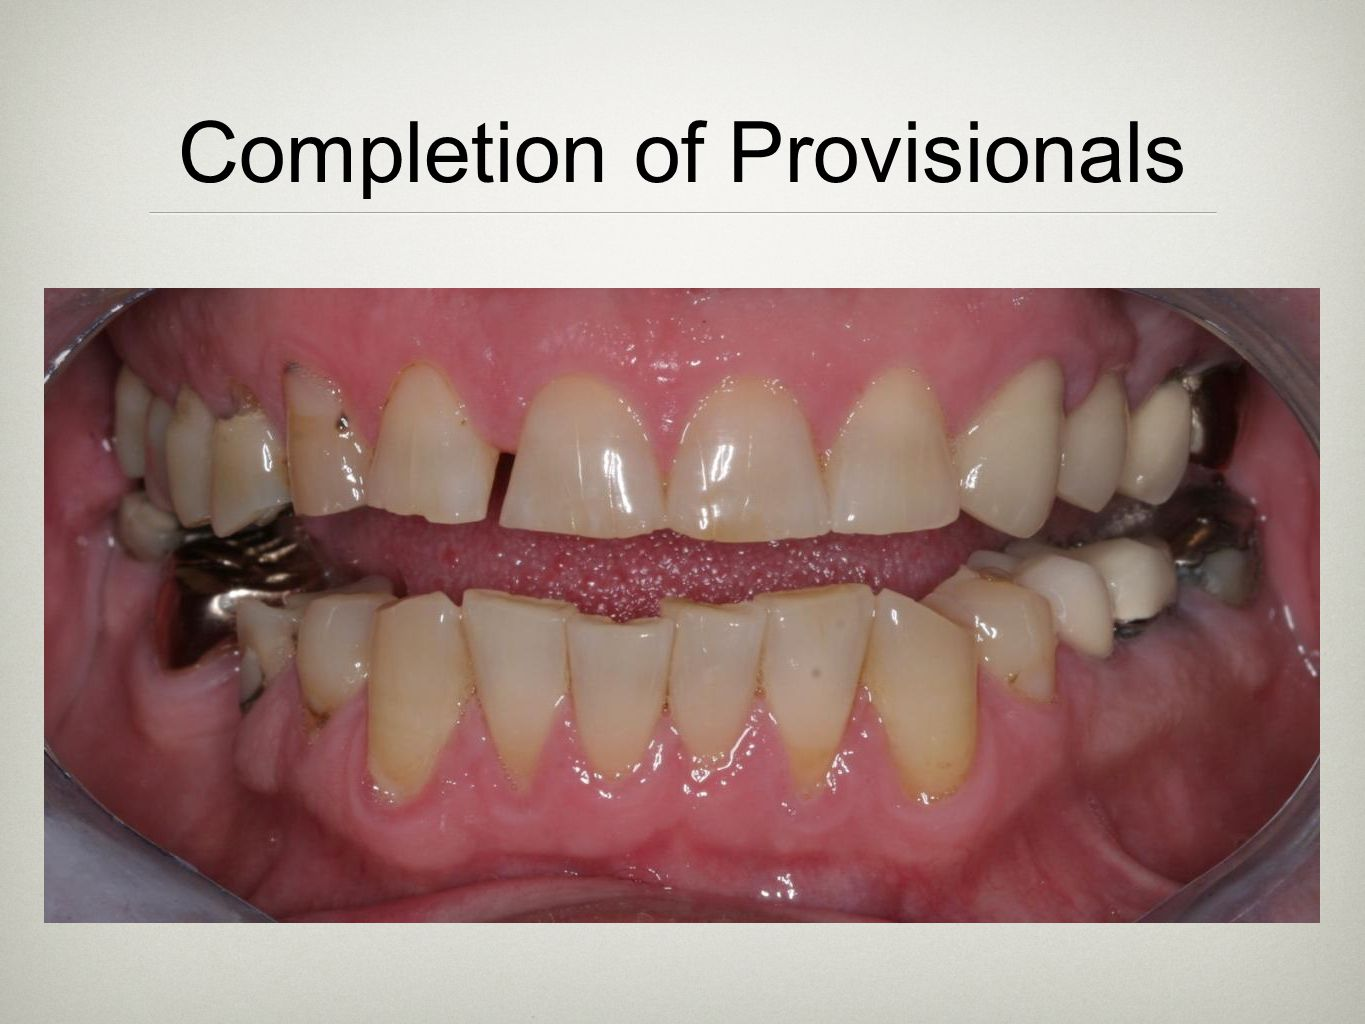 Completion of Provisionals